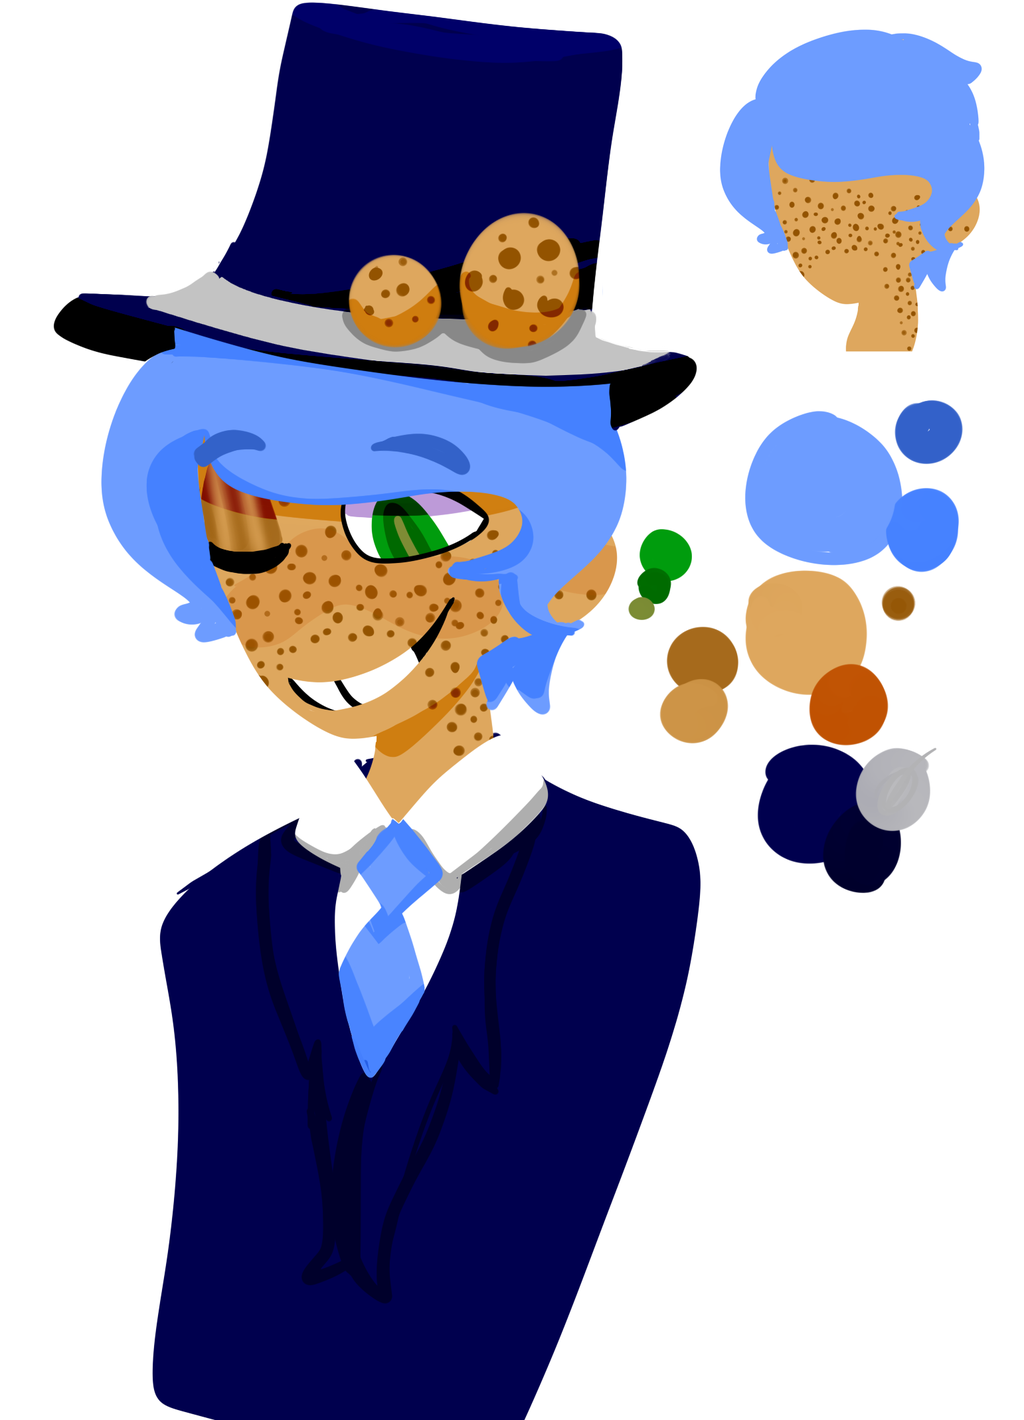 Cookie demon shit face for the oc thing by VexingPyro on DeviantArt.